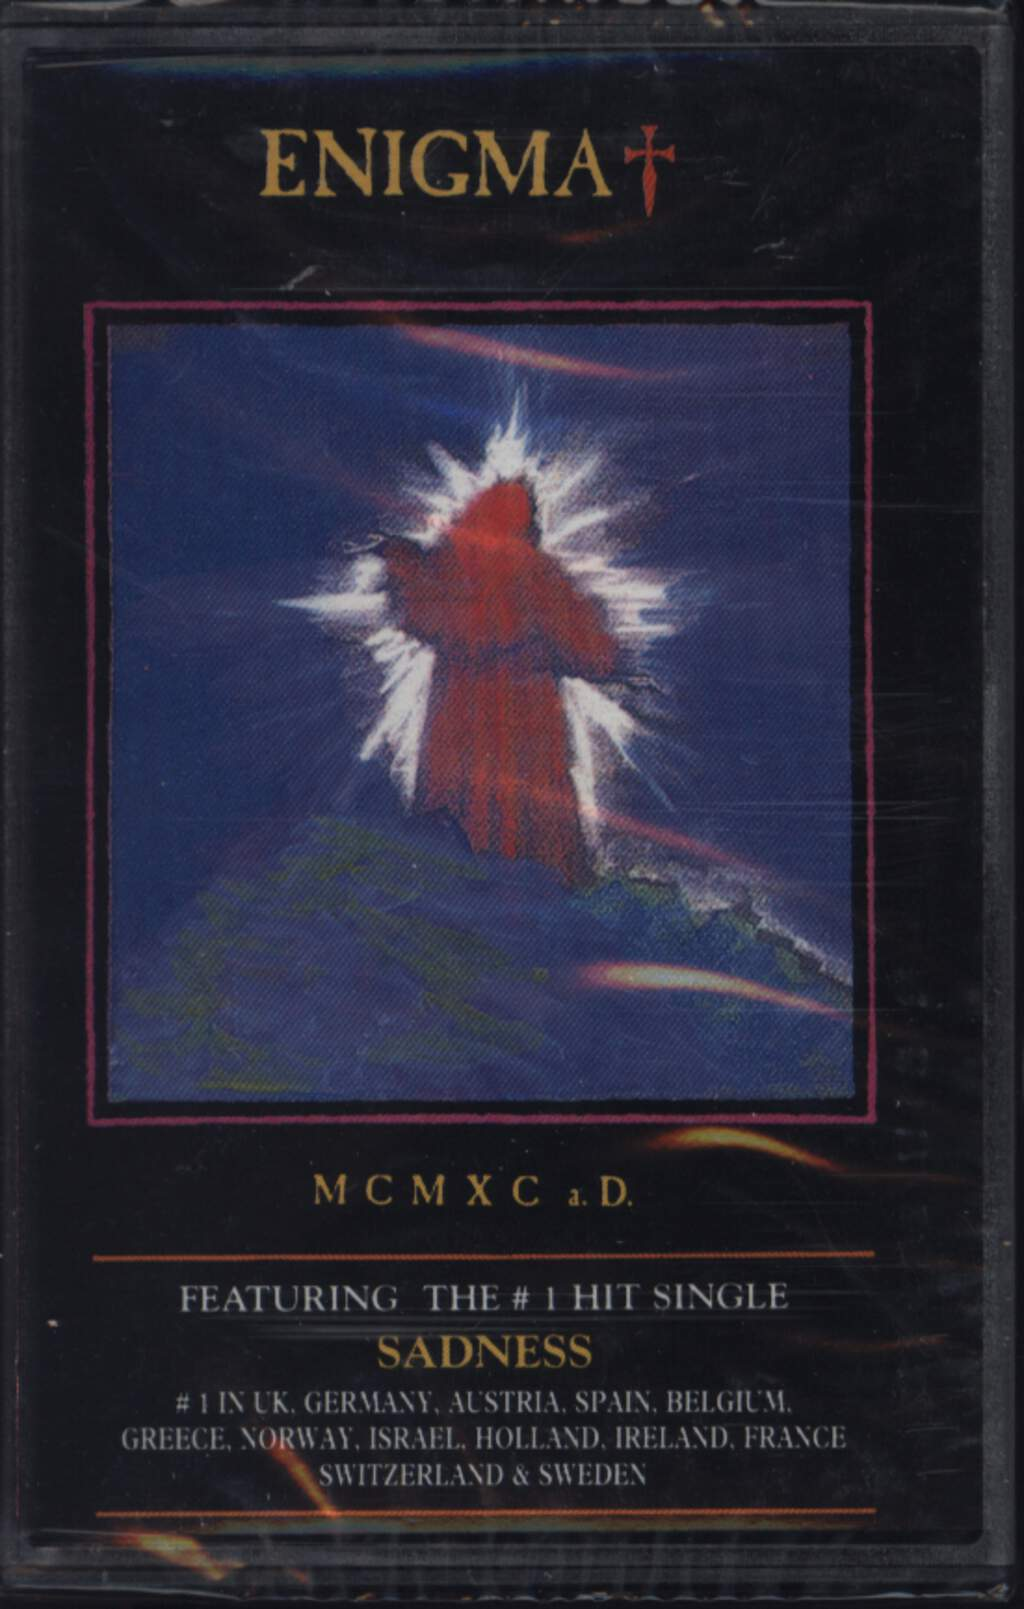 Enigma: MCMXC a.D., Tape